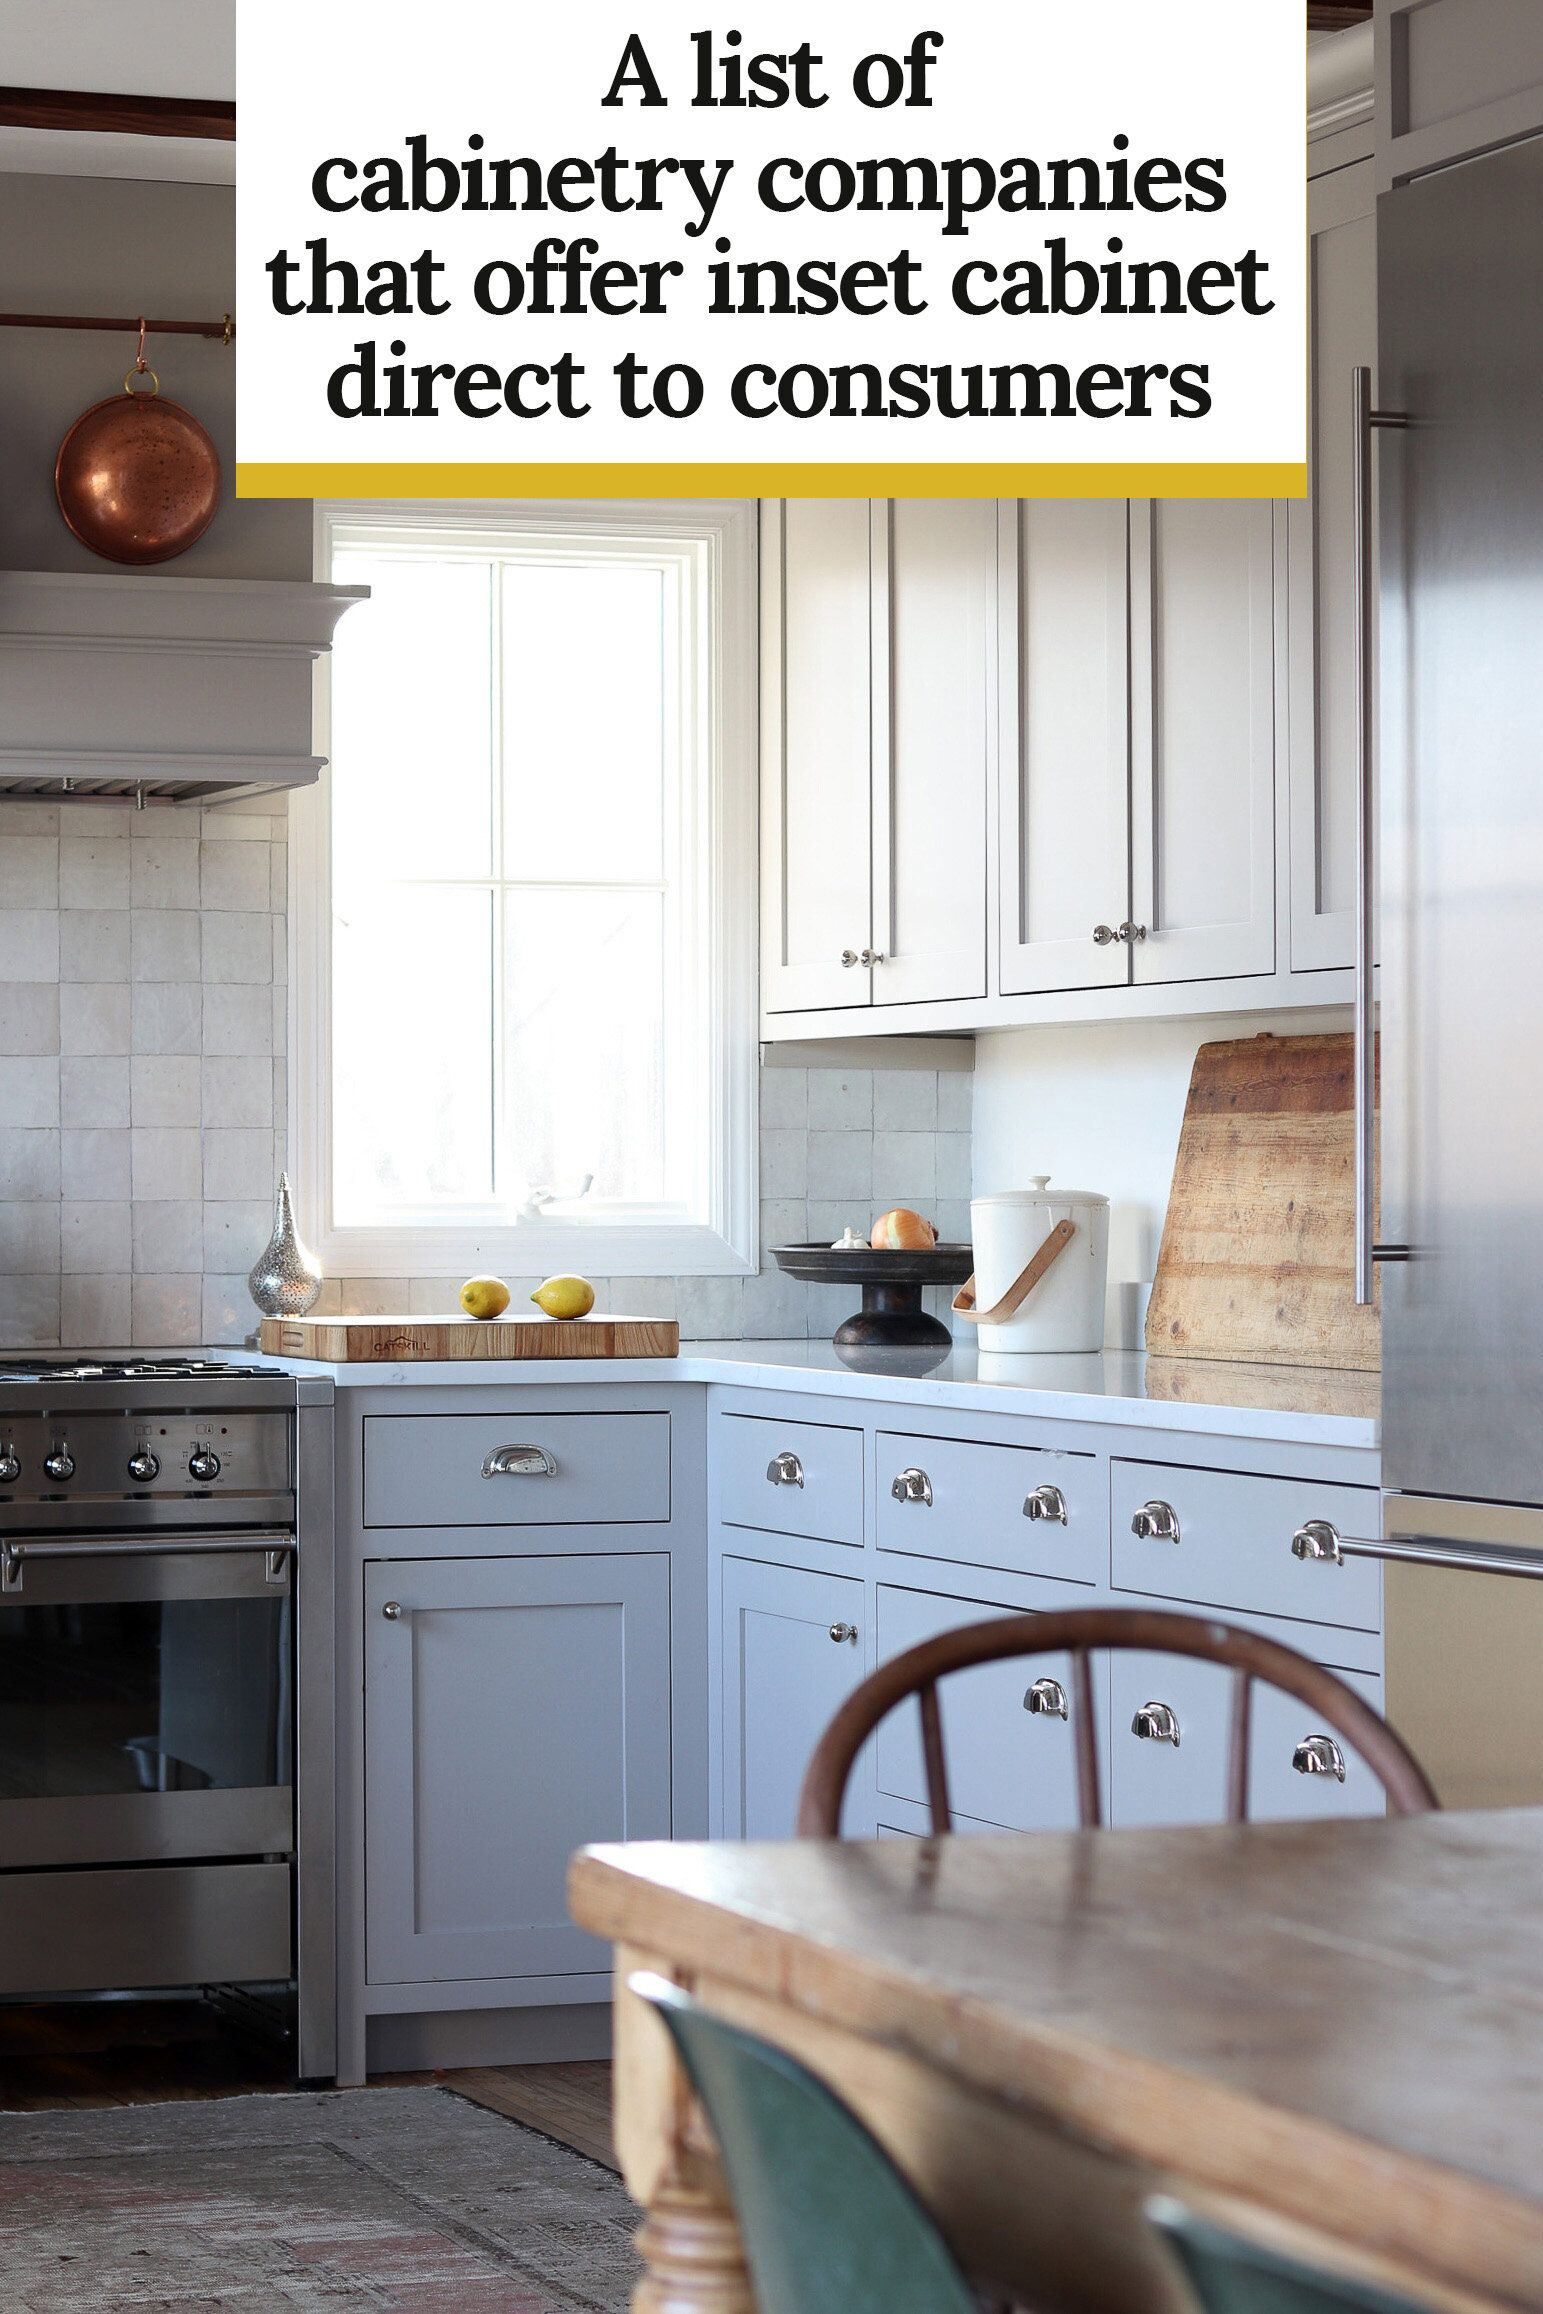 Giving Your Kitchen A Whole New Look Can Be As Easy As Adding A Fresh Coat Of Paint To Your Kitchen Cabinets We Think In 2020 Cabinet Kitchen Cabinets New Countertops